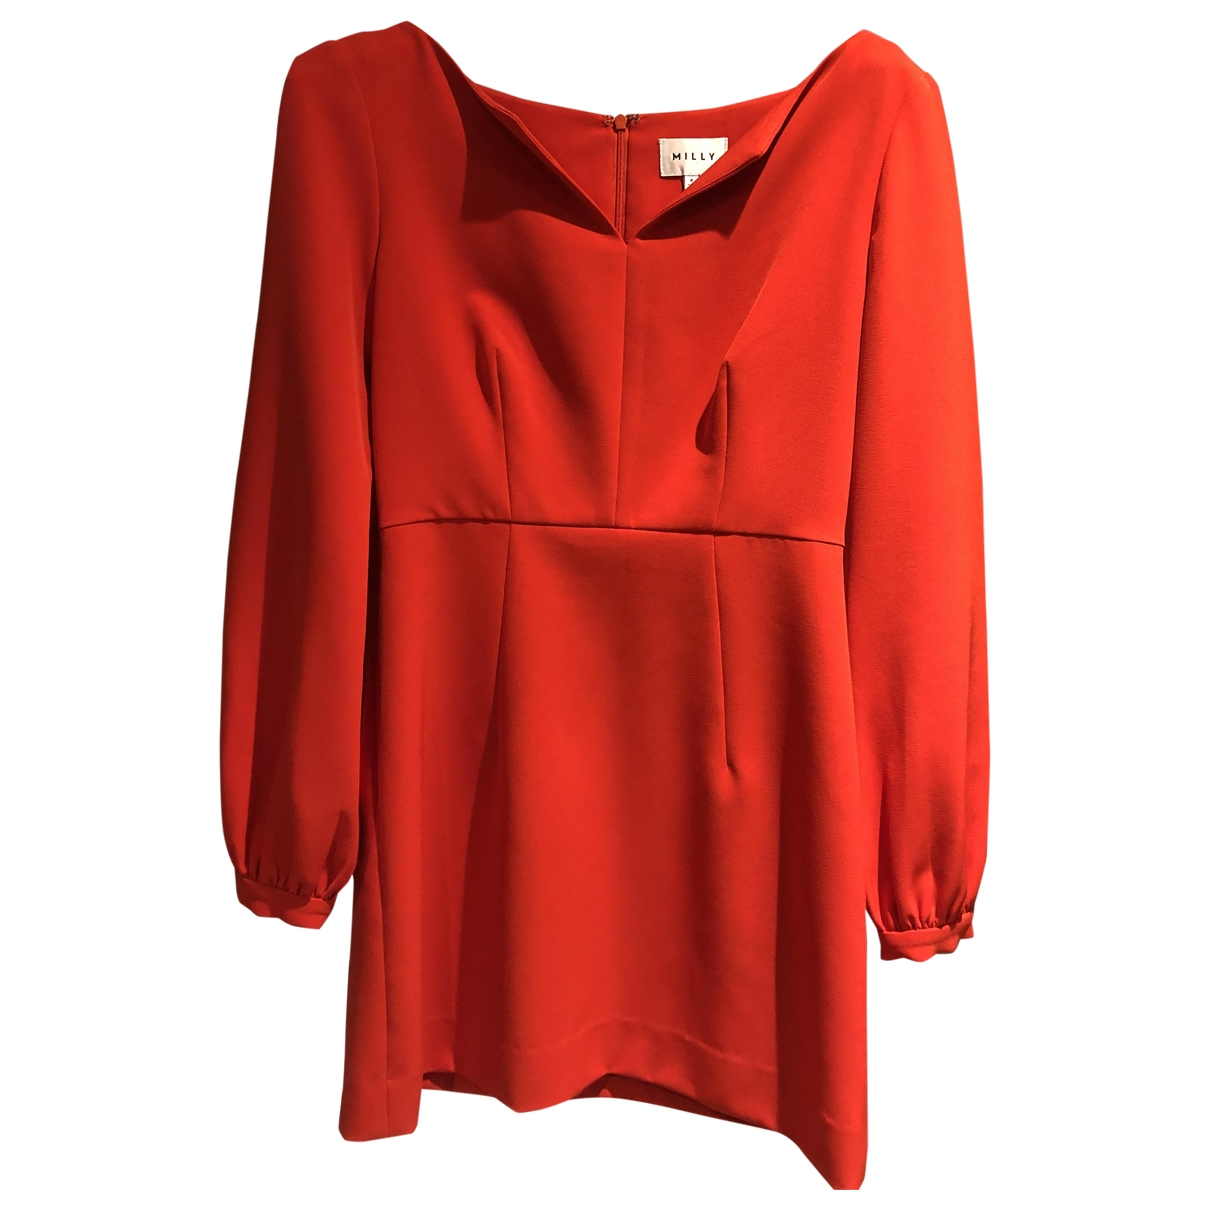 Milly \N Kleid in  Rot Polyester